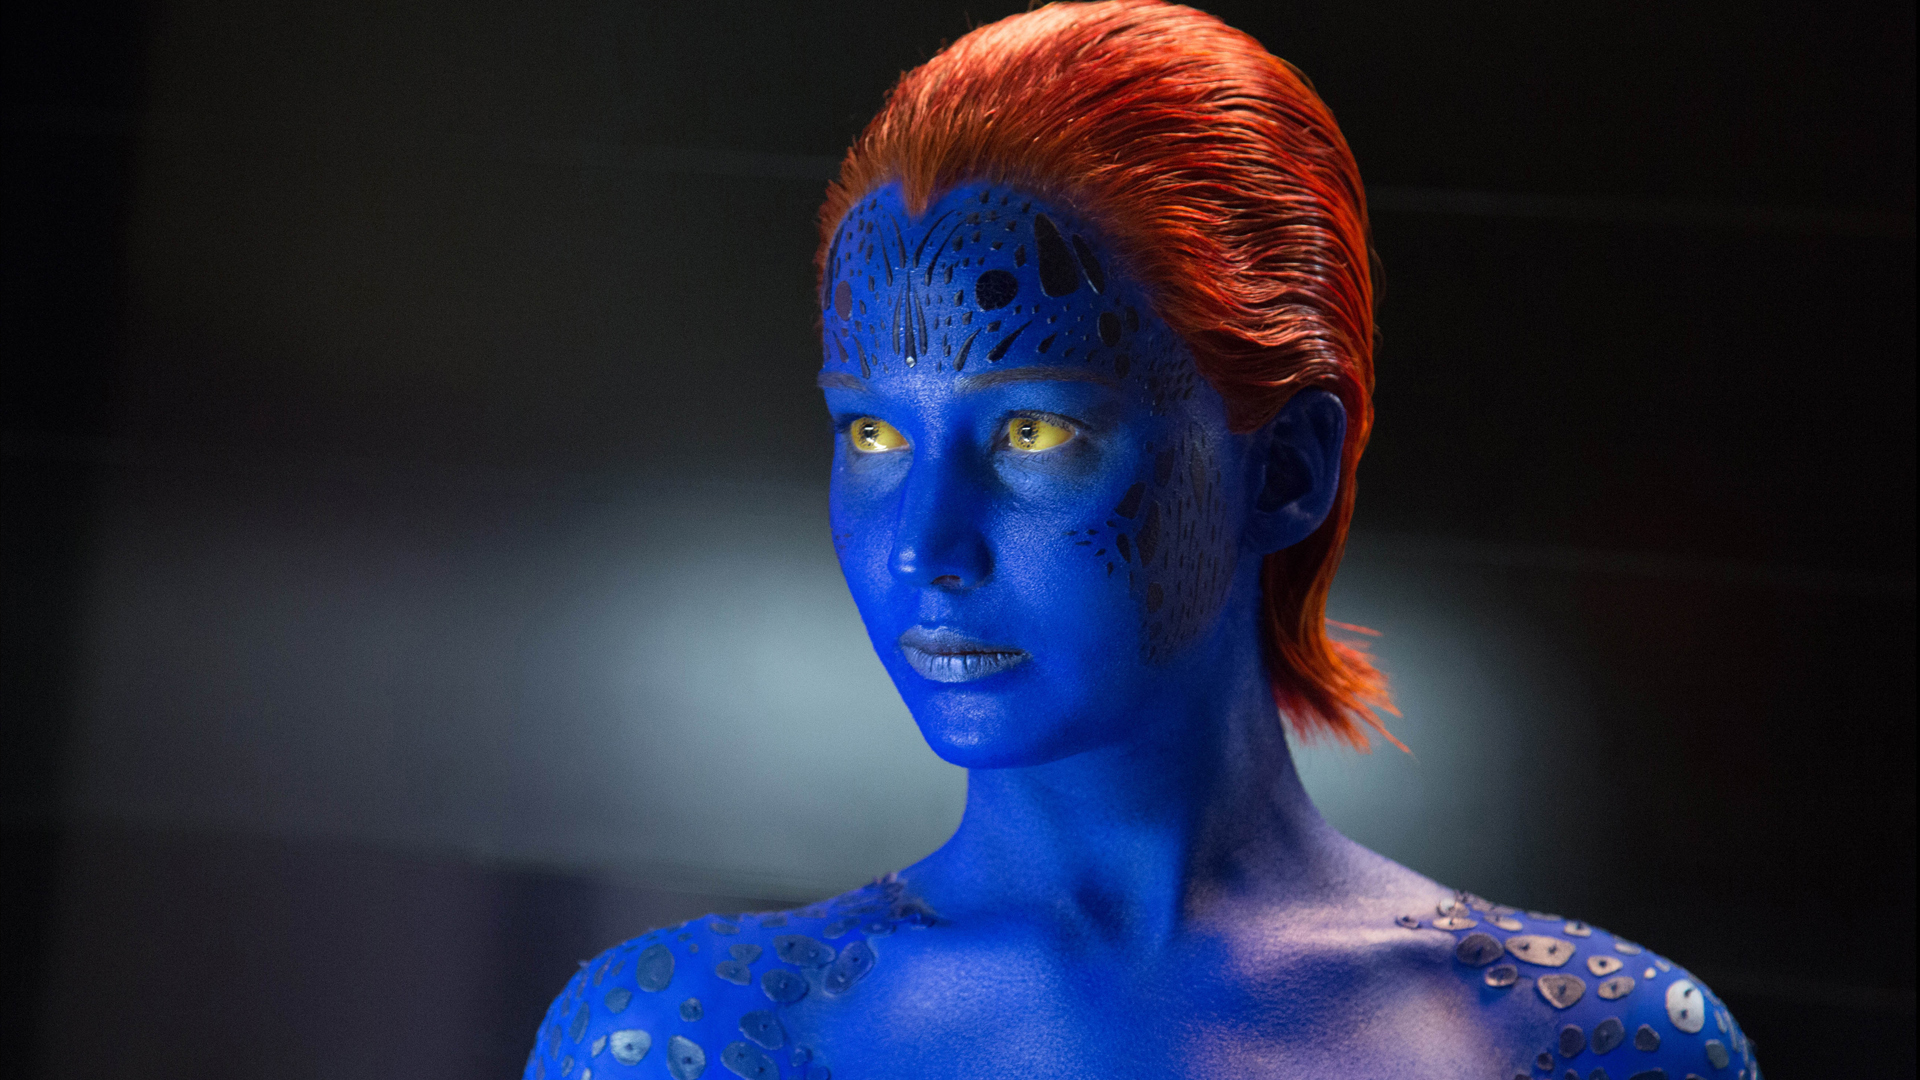 lawrence as mystique x men days of future past 2014 movie girl hd ...